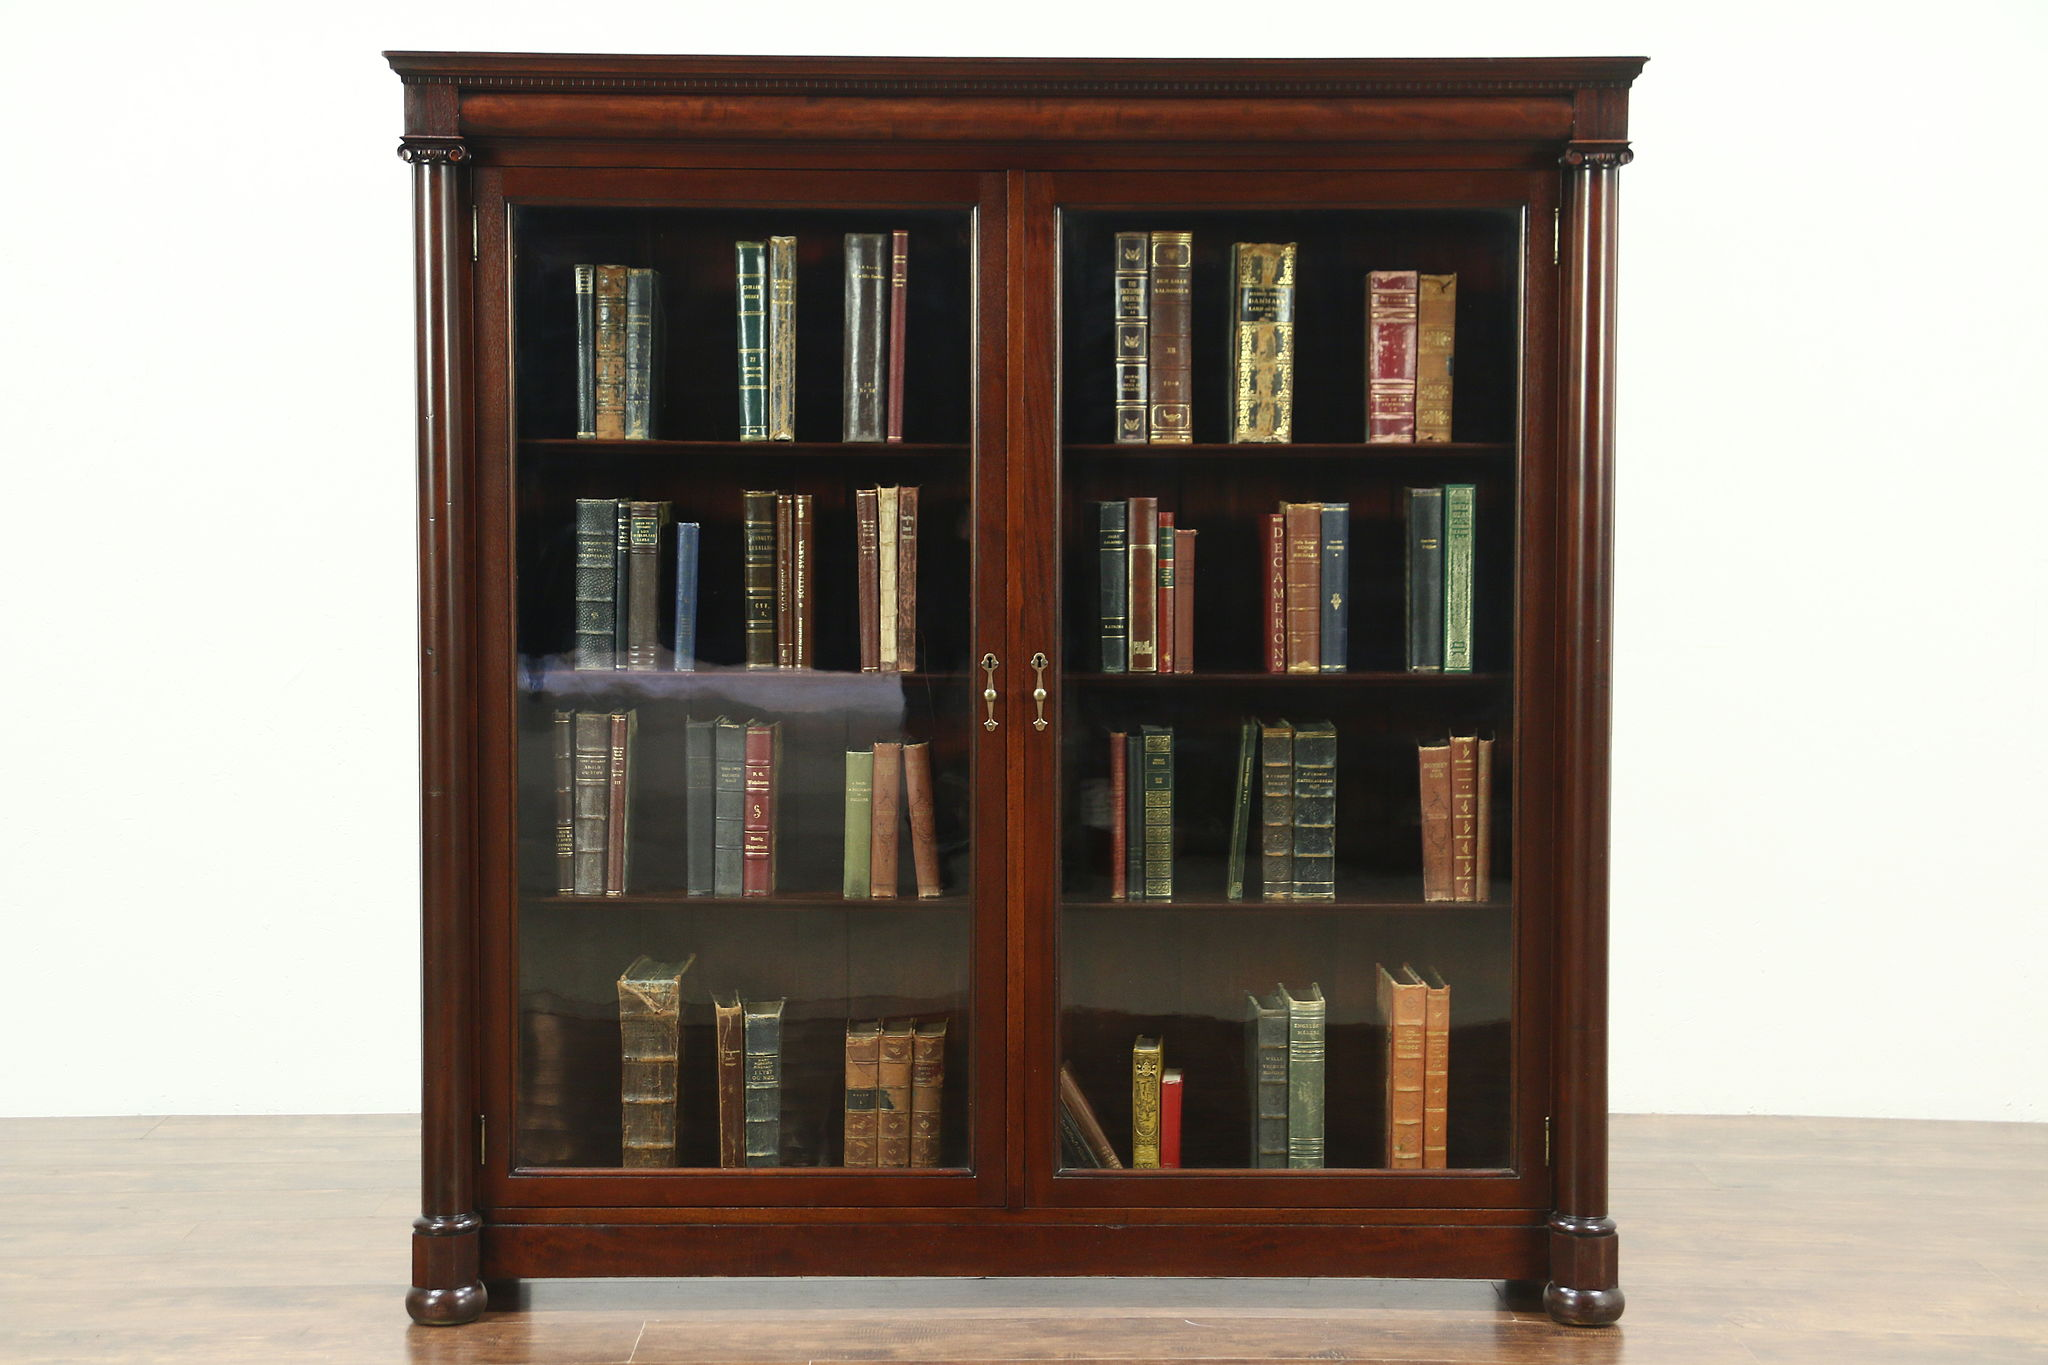 Sold Empire 1900 Antique Mahogany Classical Library Bookcase Wavy Glass Doors Harp Gallery Antiques Furniture